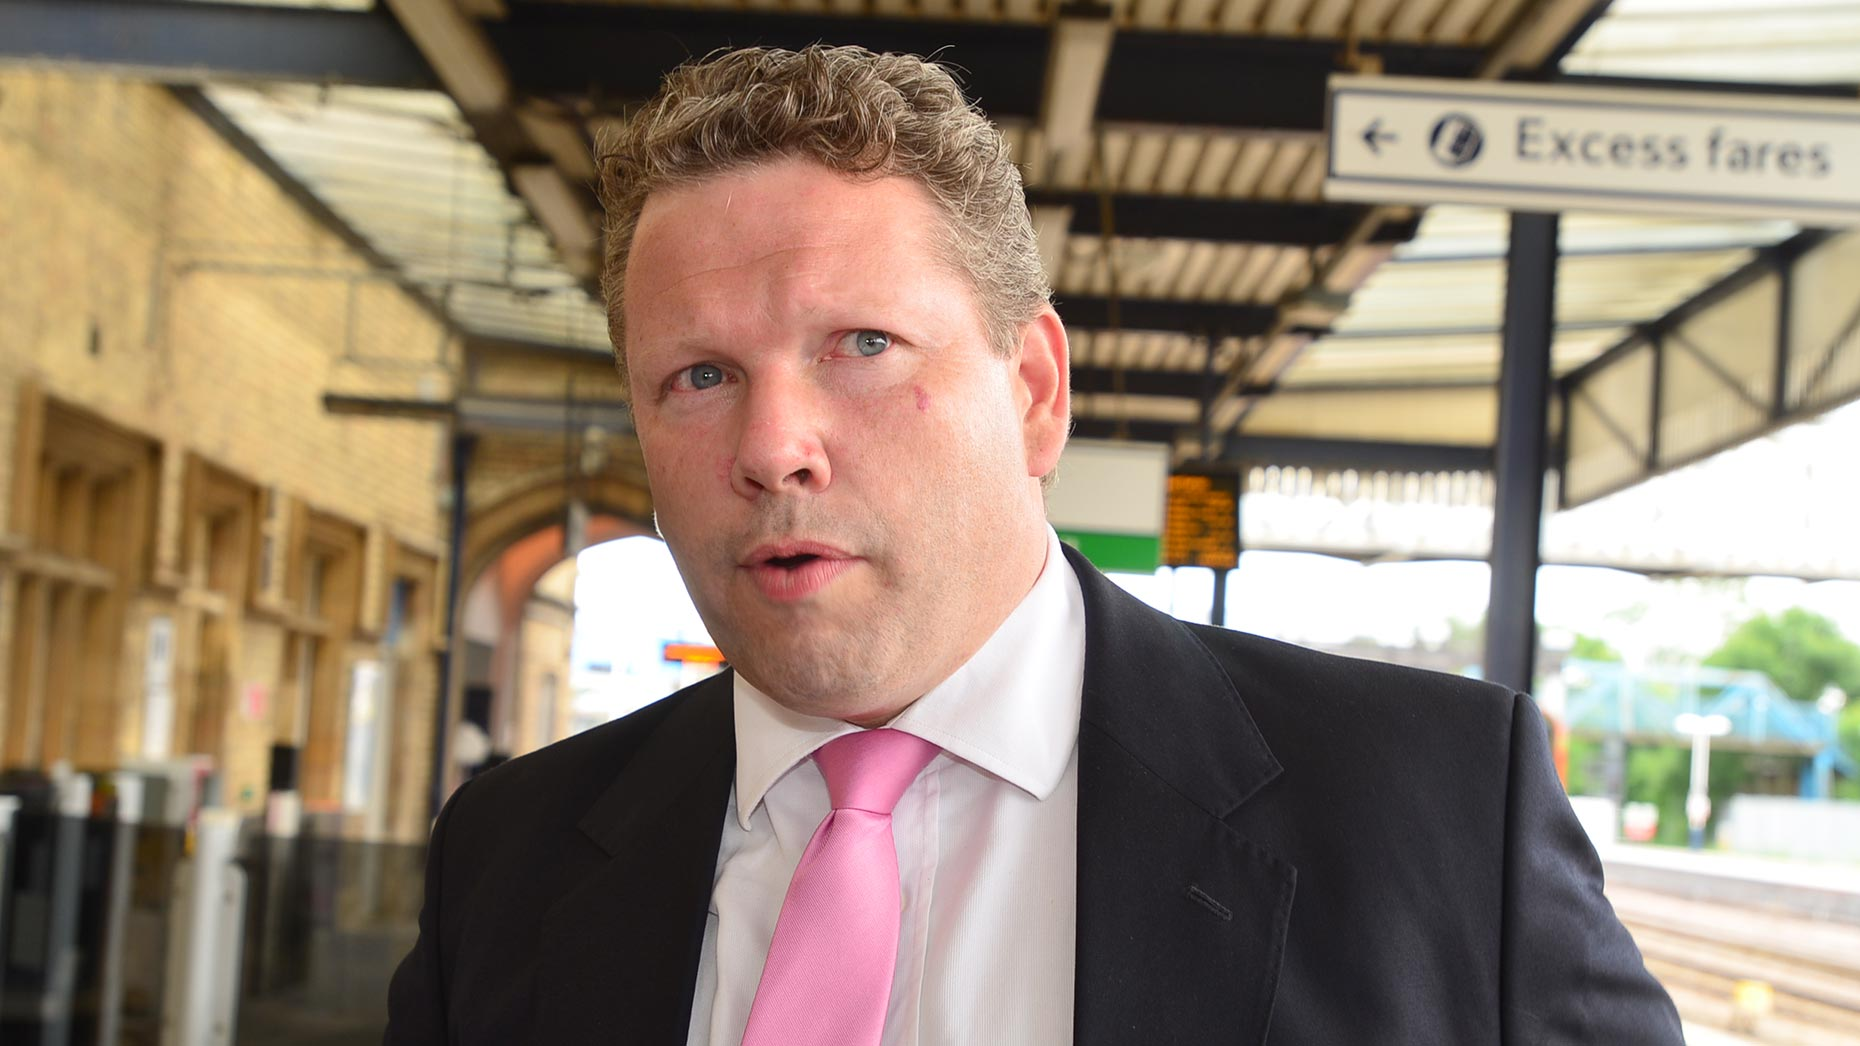 Lincoln MP Karl McCartney at Lincoln Central station after the Transport Secretary visit on june 26, 2014. Photo: Steve Smailes/The Lincolnite